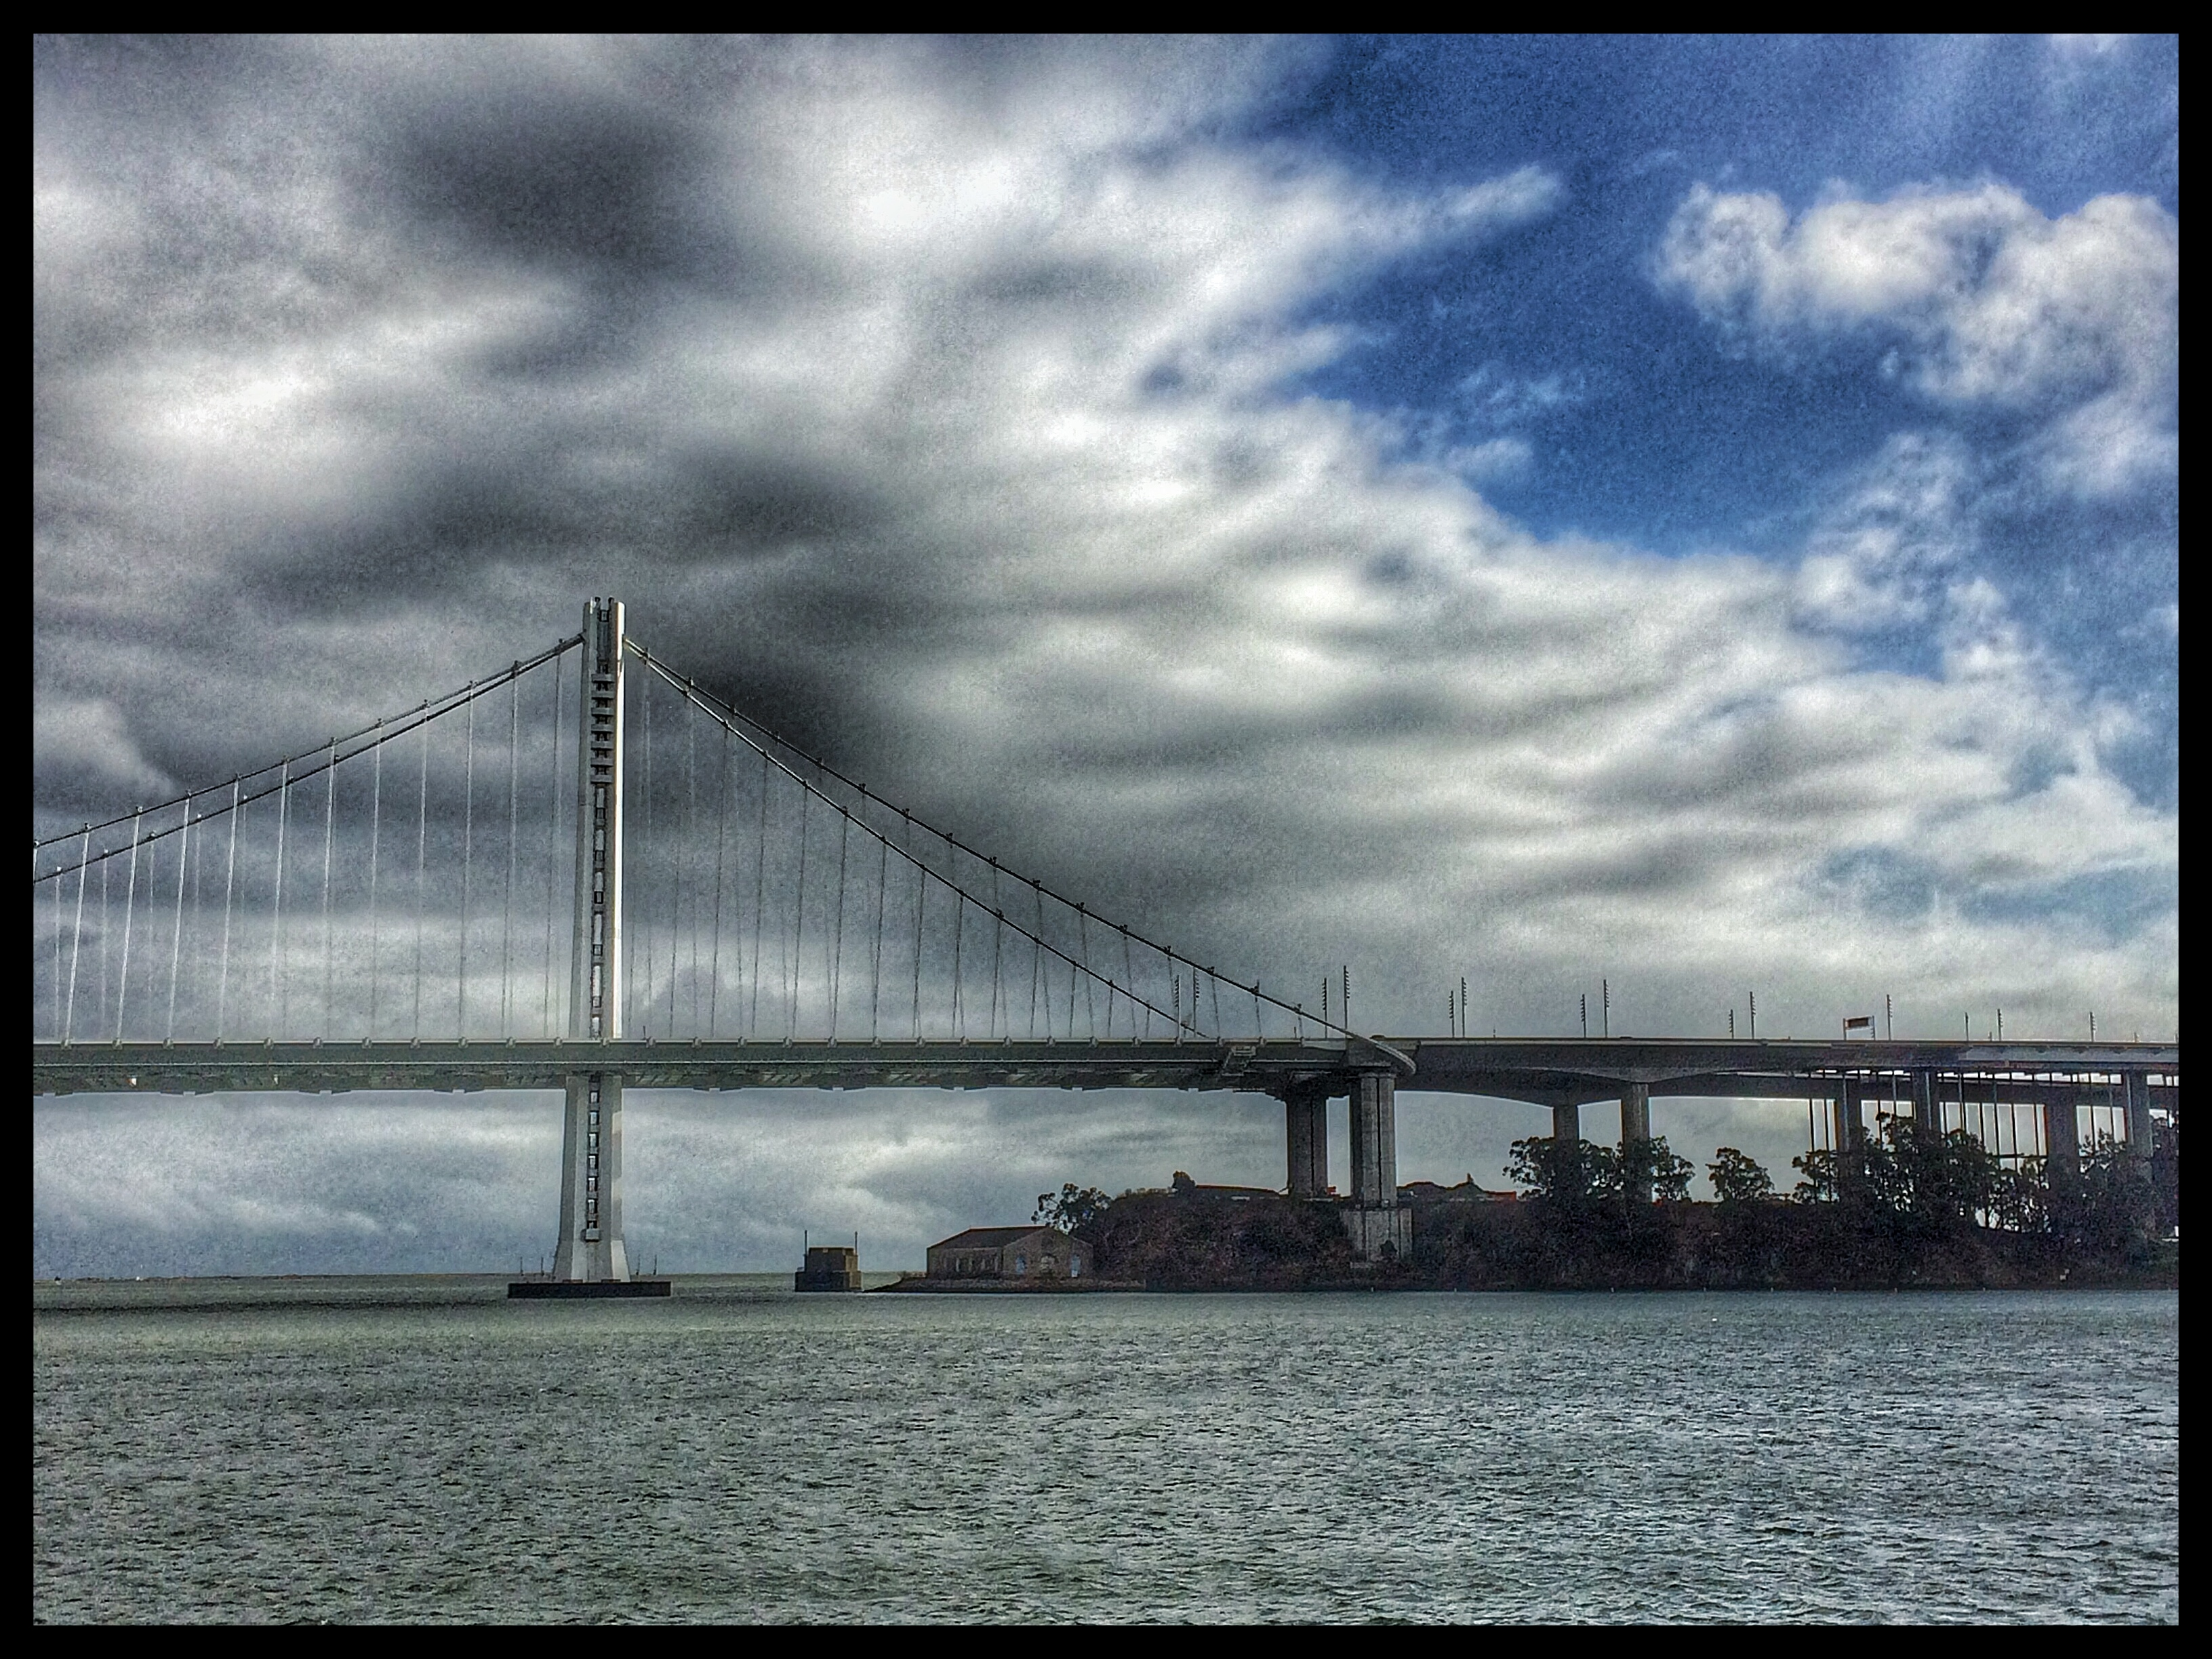 A Great View of the New Bay Bridge